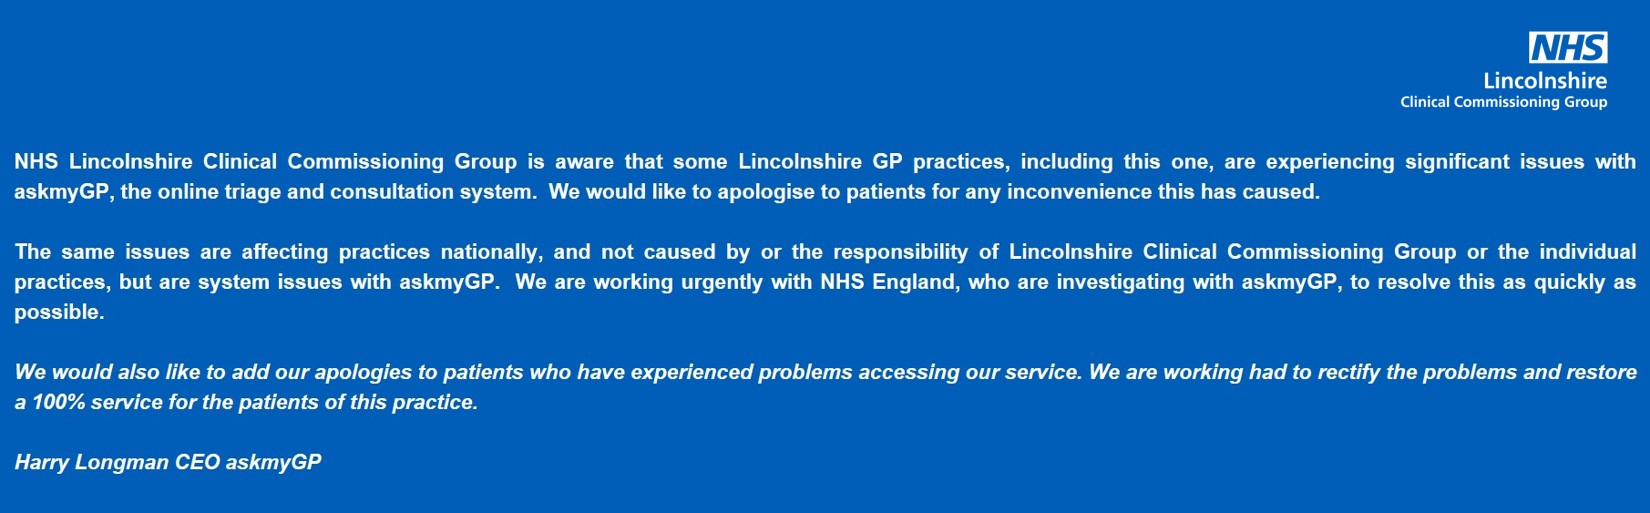 We are currently experiencing problems with AskMyGP. Please bear with us whilst this is resolved. We apologise for any inconvenience caused.